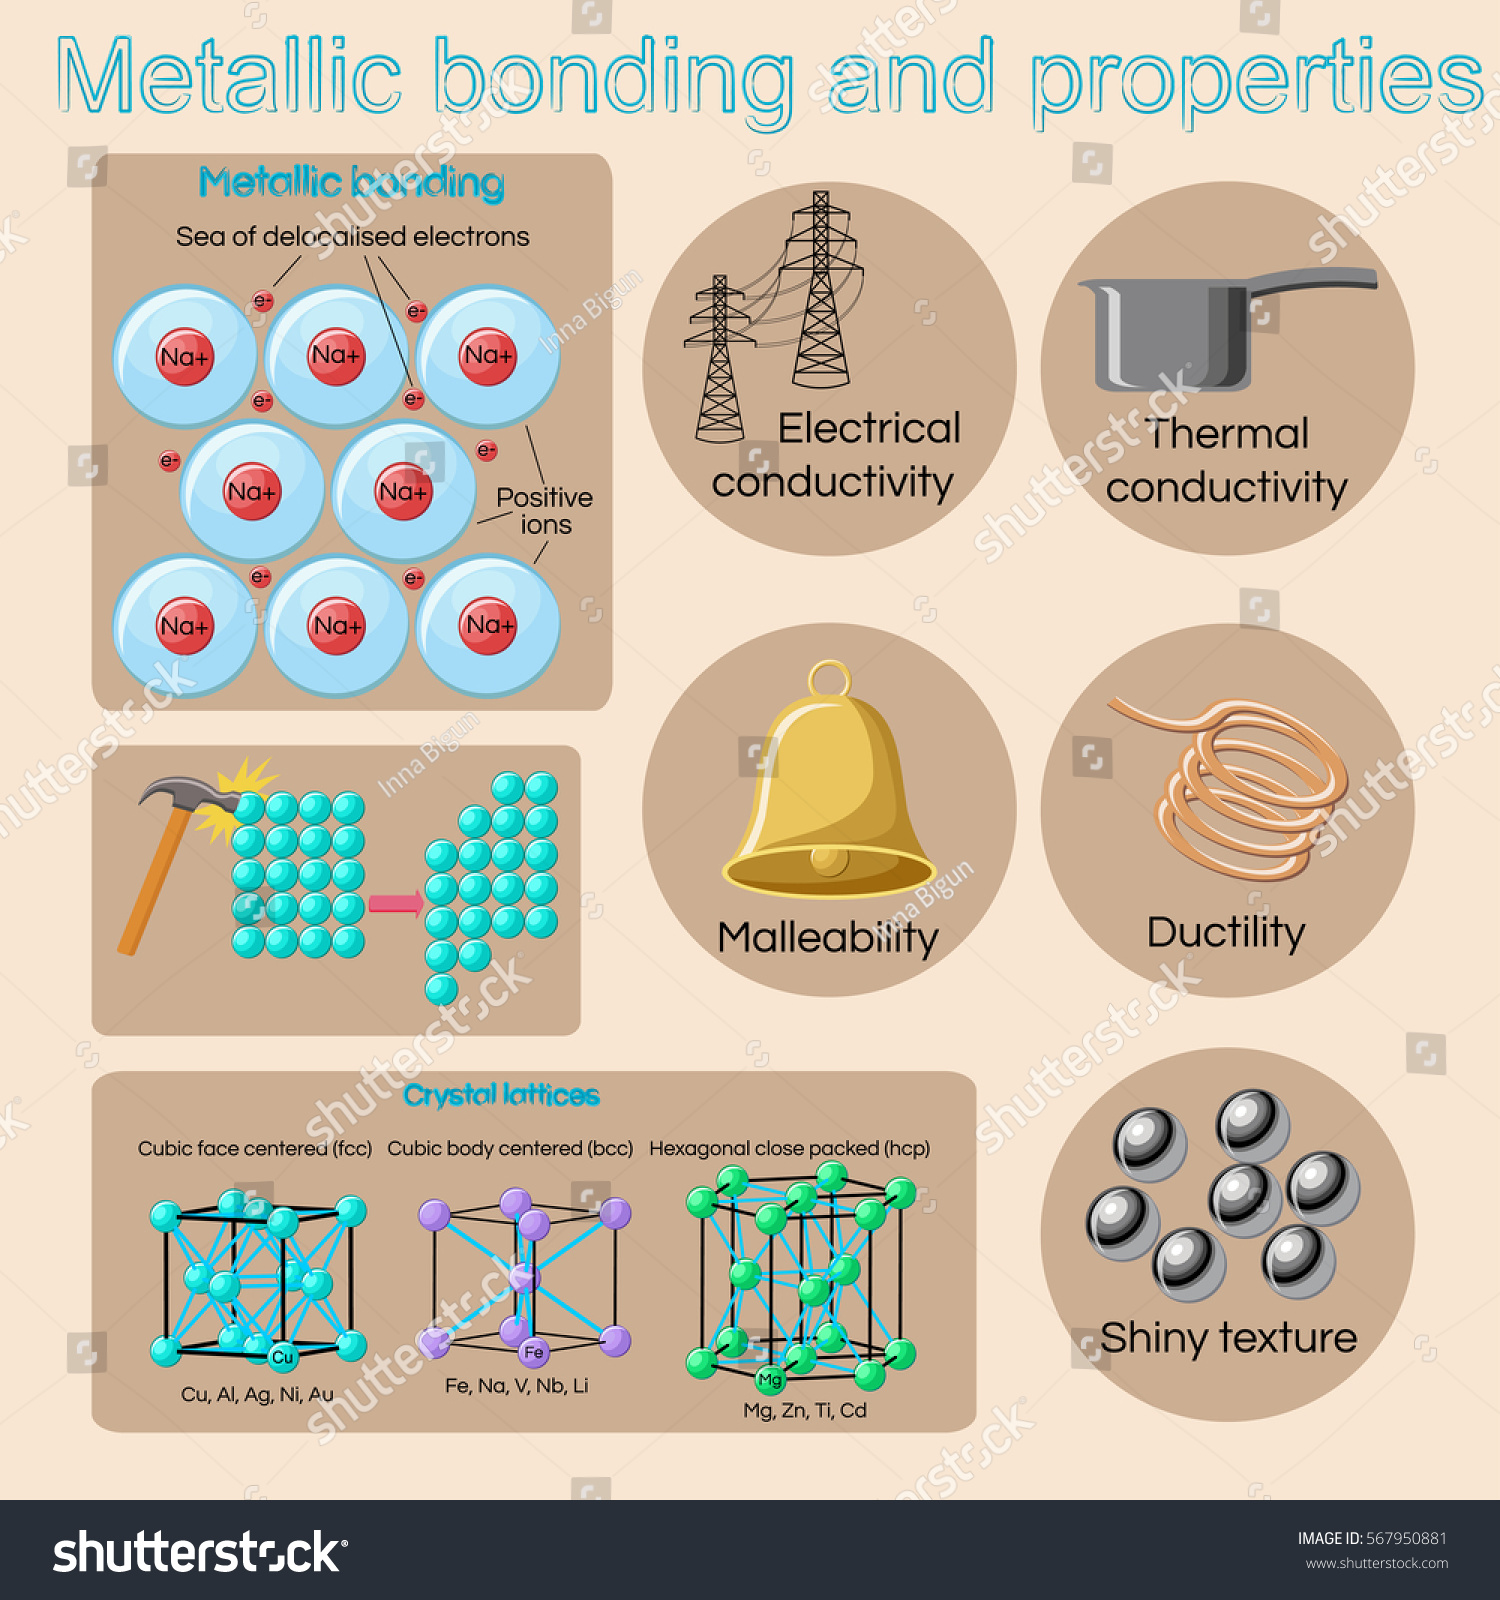 malleability chemistry. metallic bonding and basic physical properties of metals alloys. educational chemistry physics for malleability